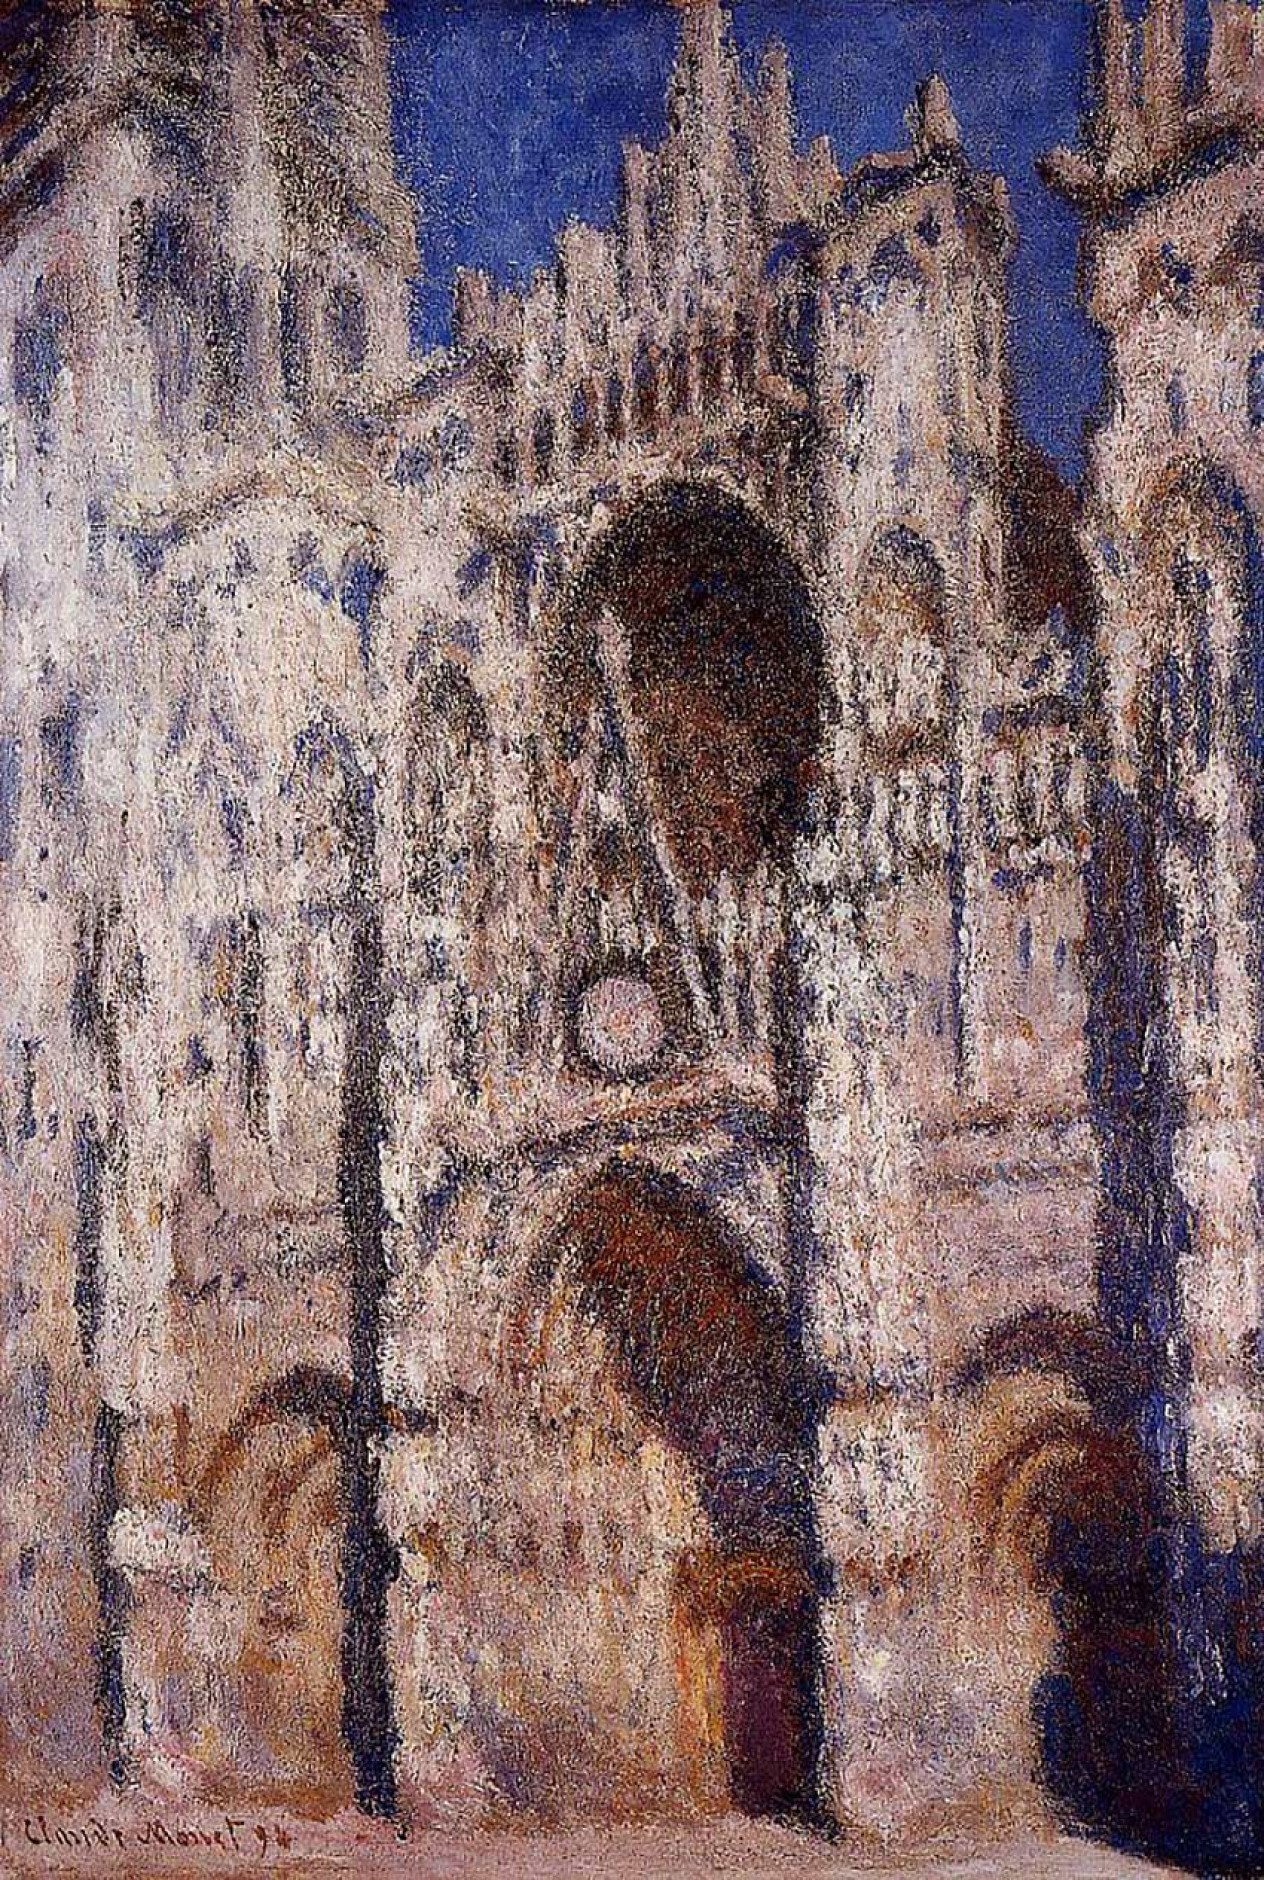 Monet, Rouen Cathedral 01